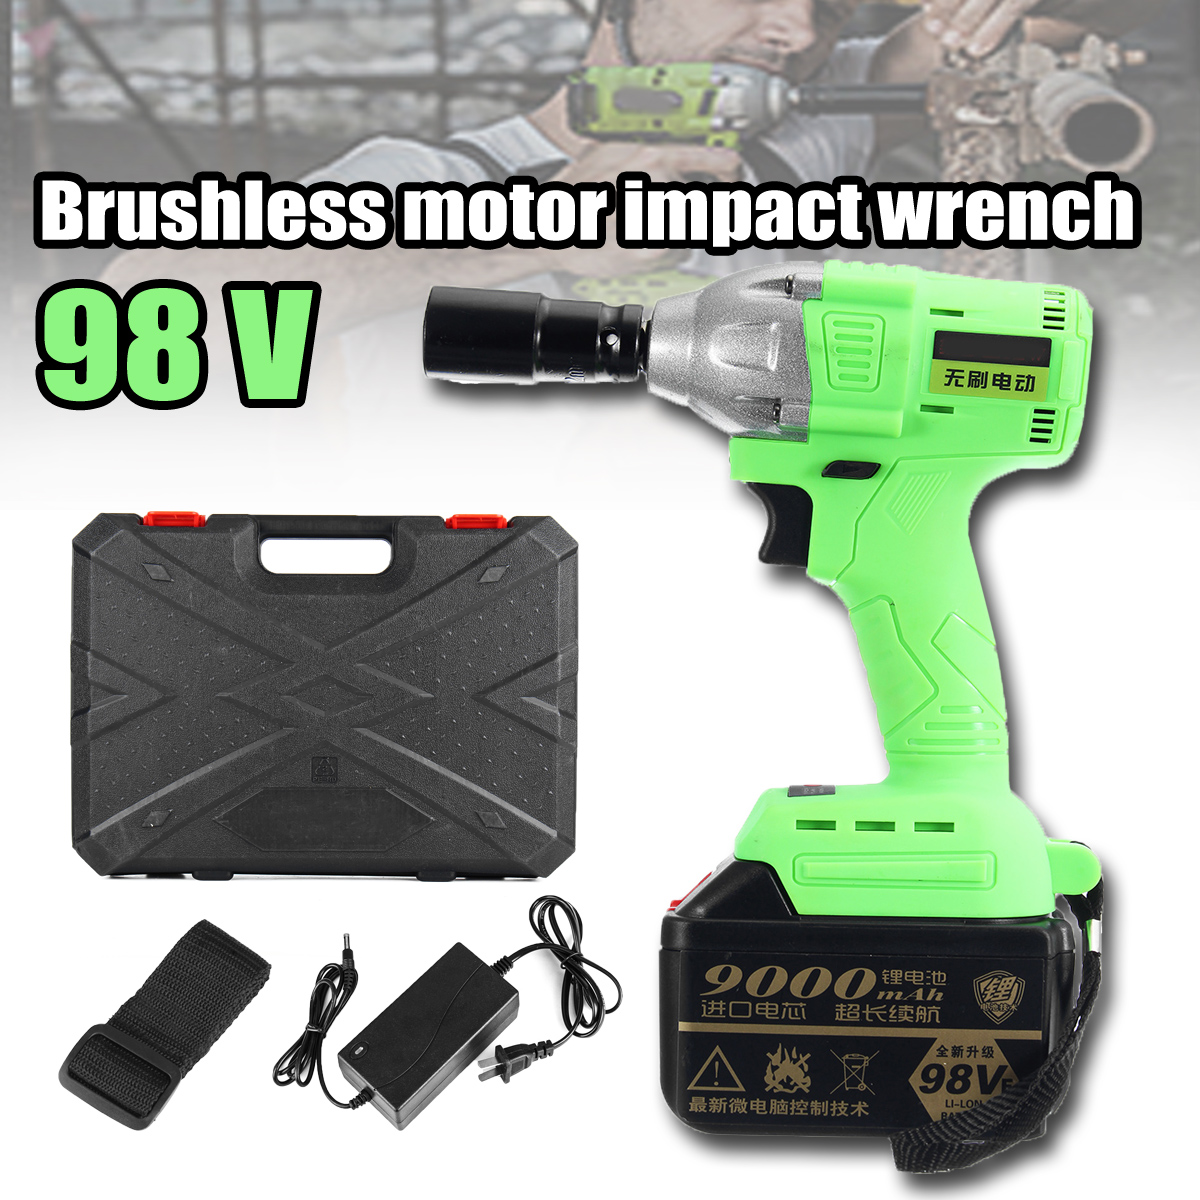 98V Li-ion Cordless Electric Wrench High Torque Impact Wrench Brushless with 2 Battery